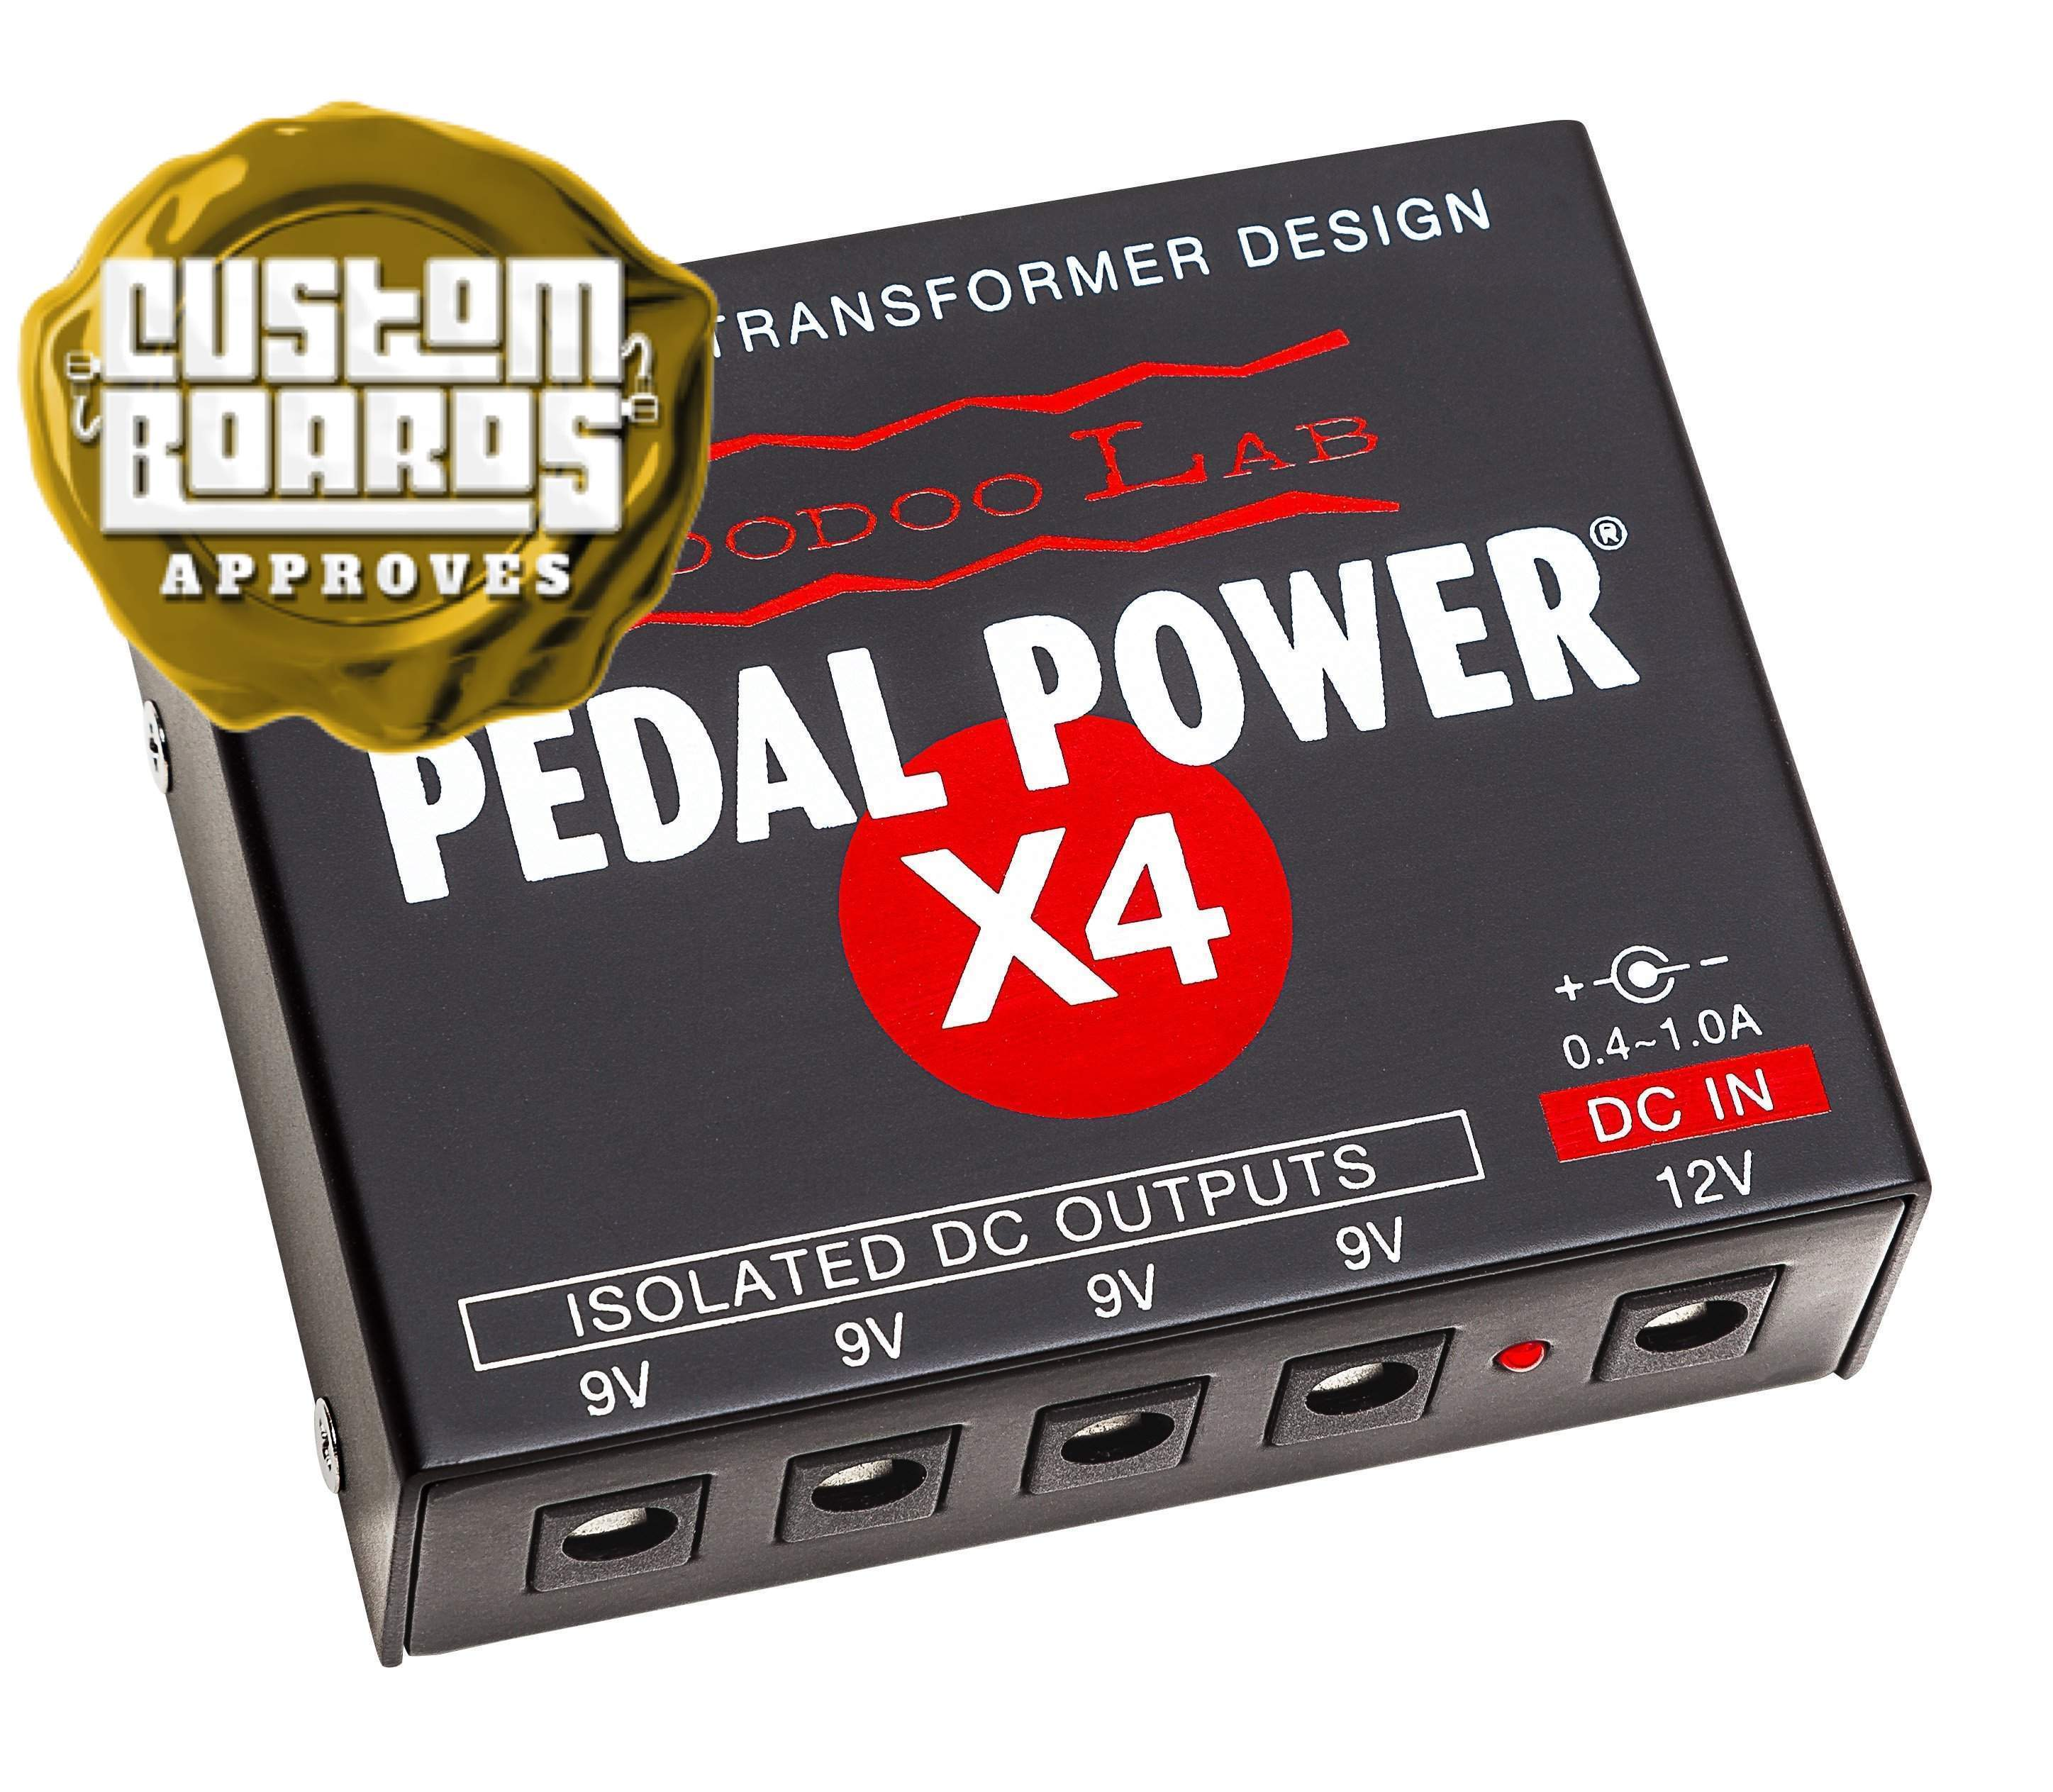 voodoo lab pedal power x4 isolated power supply custom boards finland. Black Bedroom Furniture Sets. Home Design Ideas